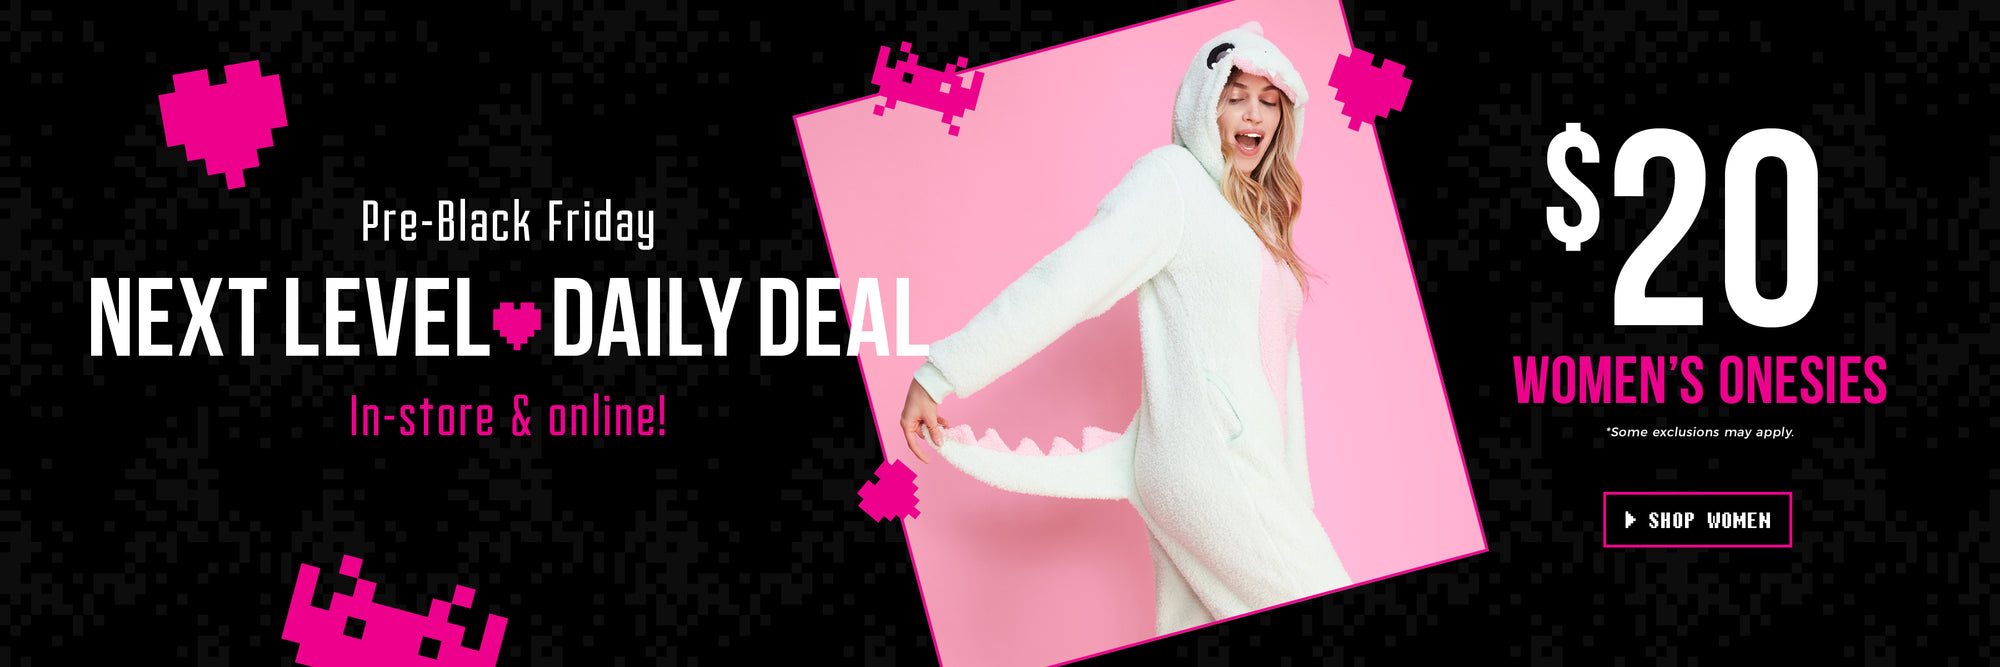 Daily Deal - $20 Women's Onesies